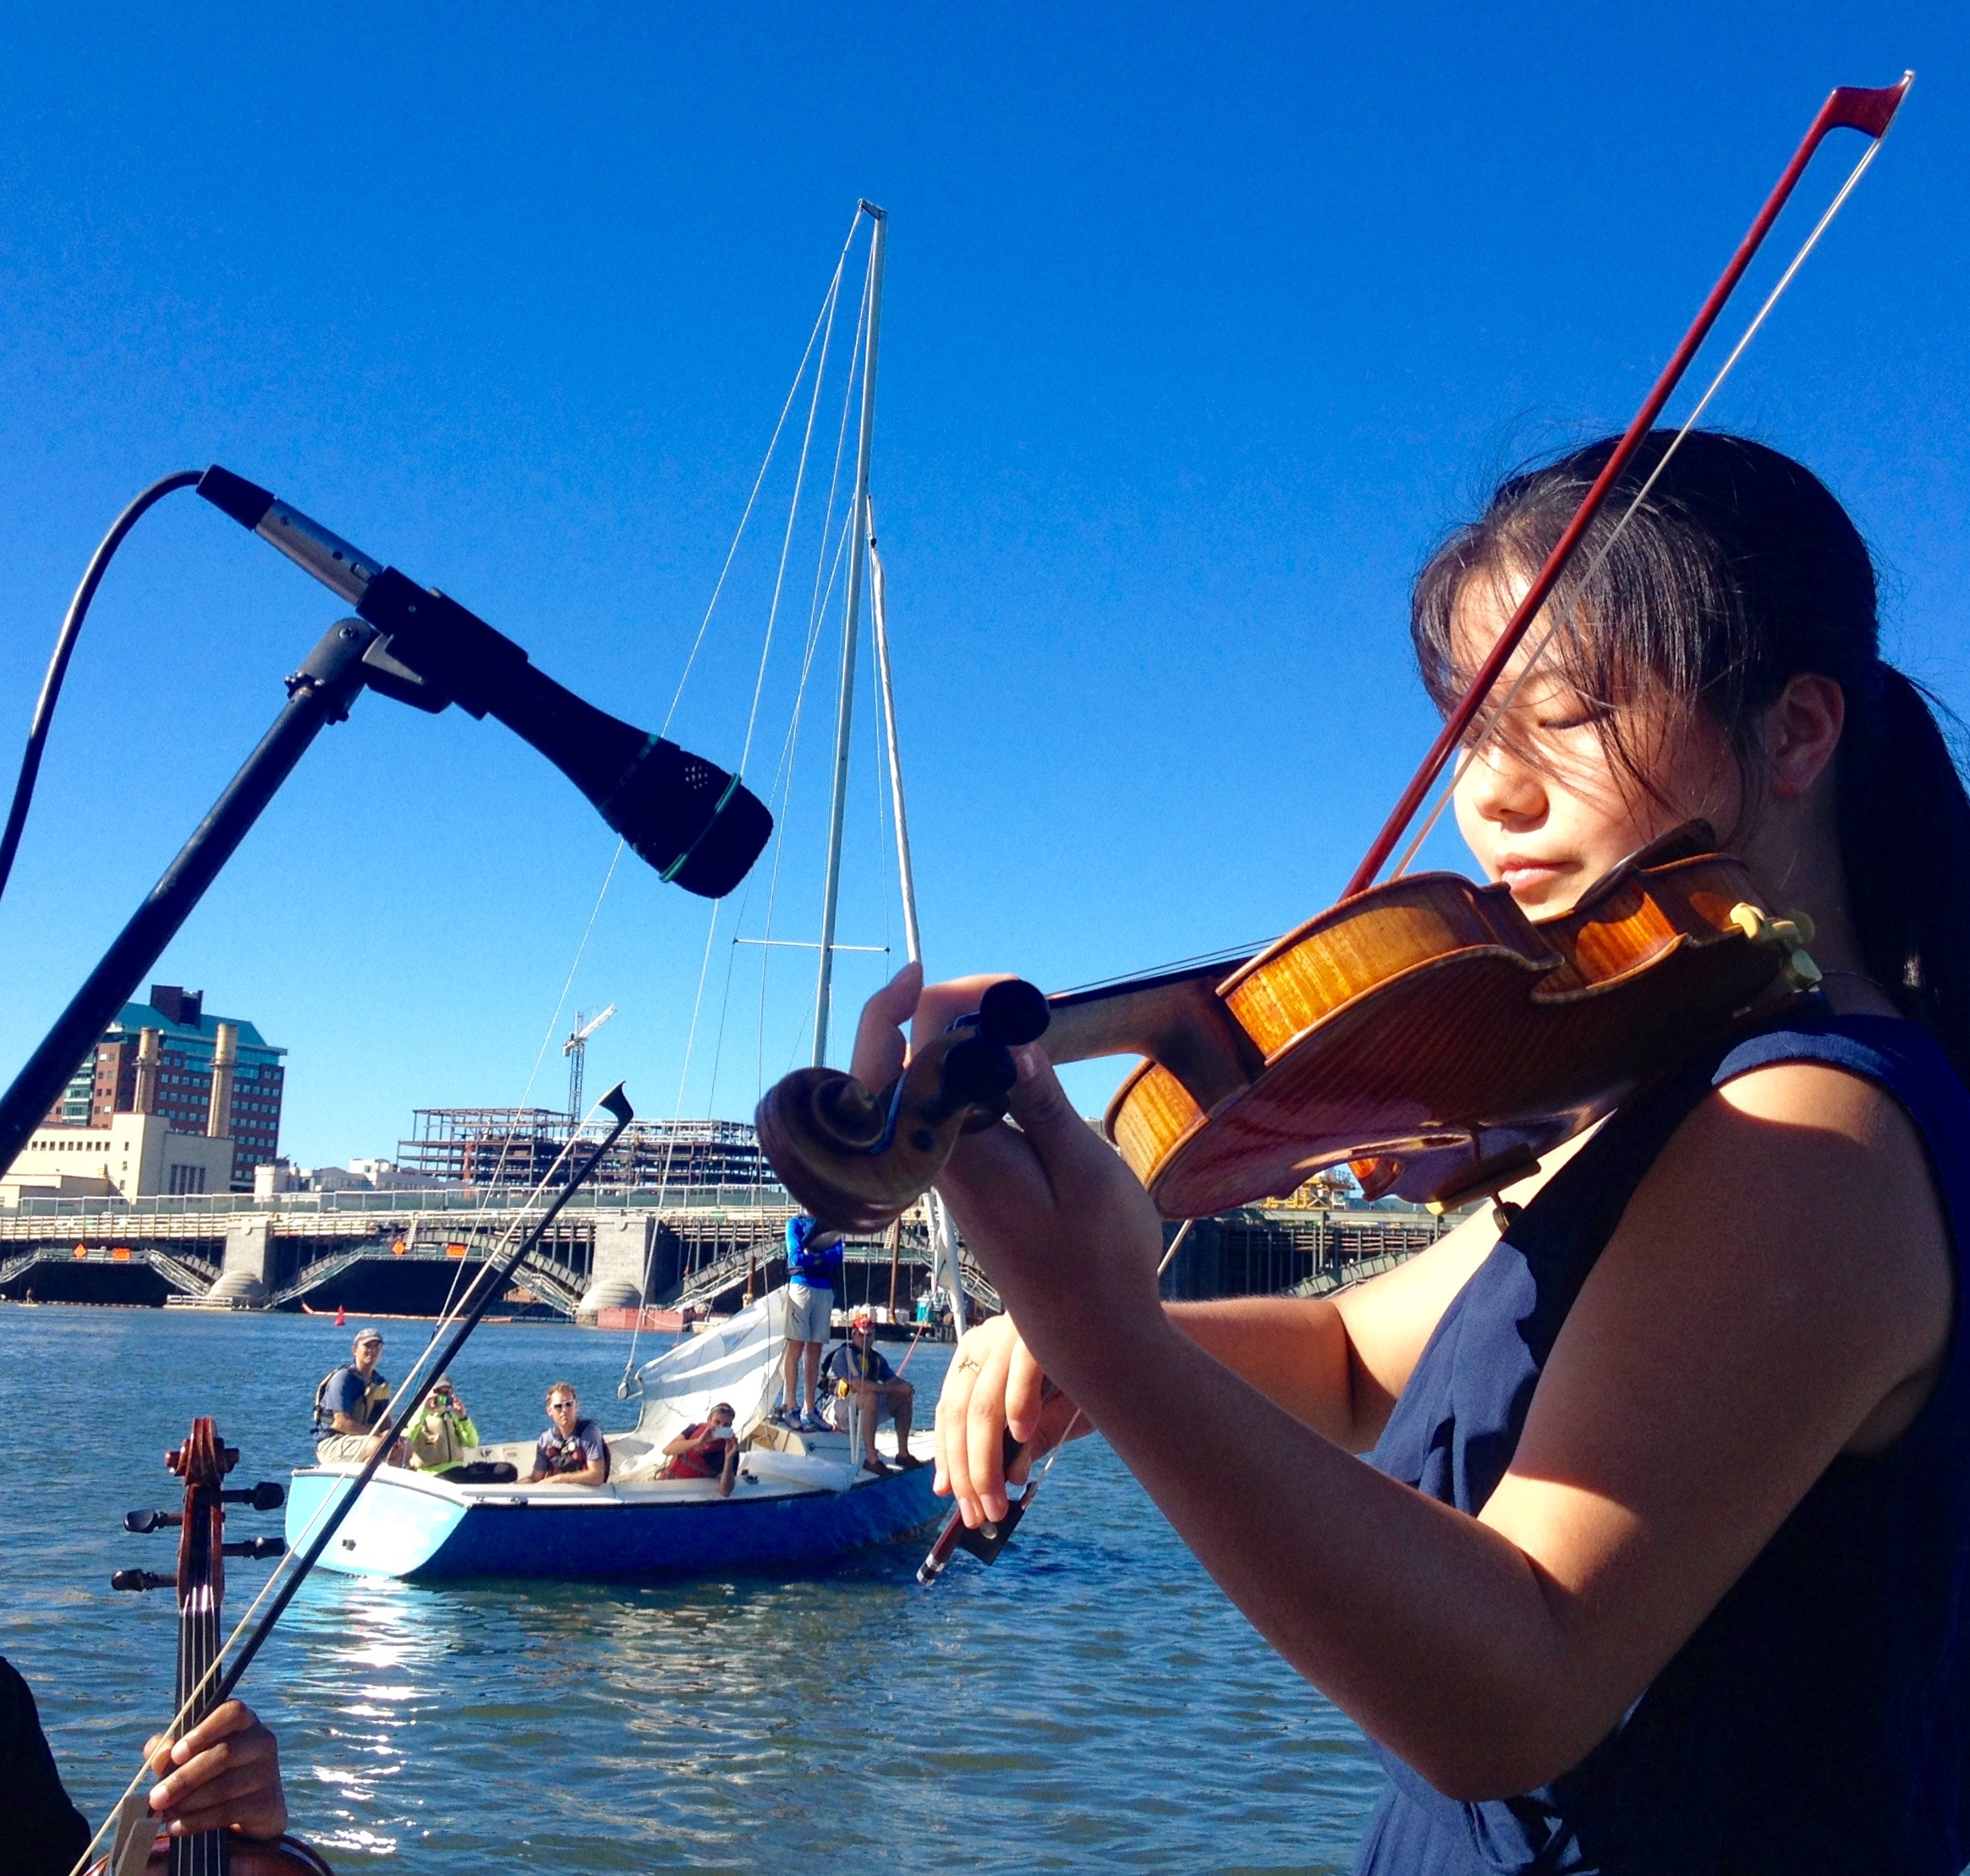 Performing Bach on the Charles, standing on Maestro Zander's boat!